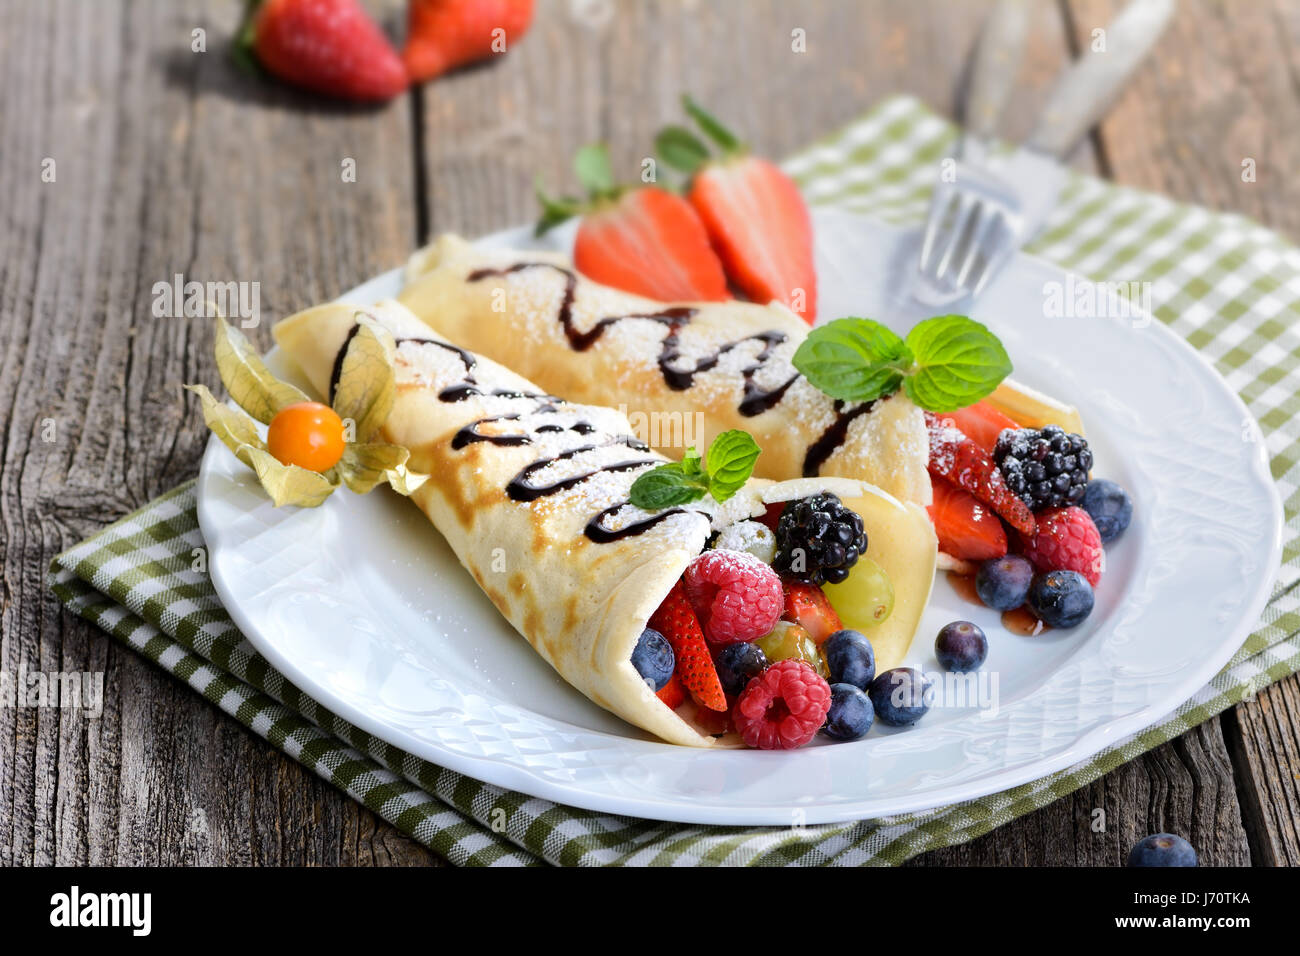 Two homemade pancakes stuffed with mixed fresh berries - Stock Image